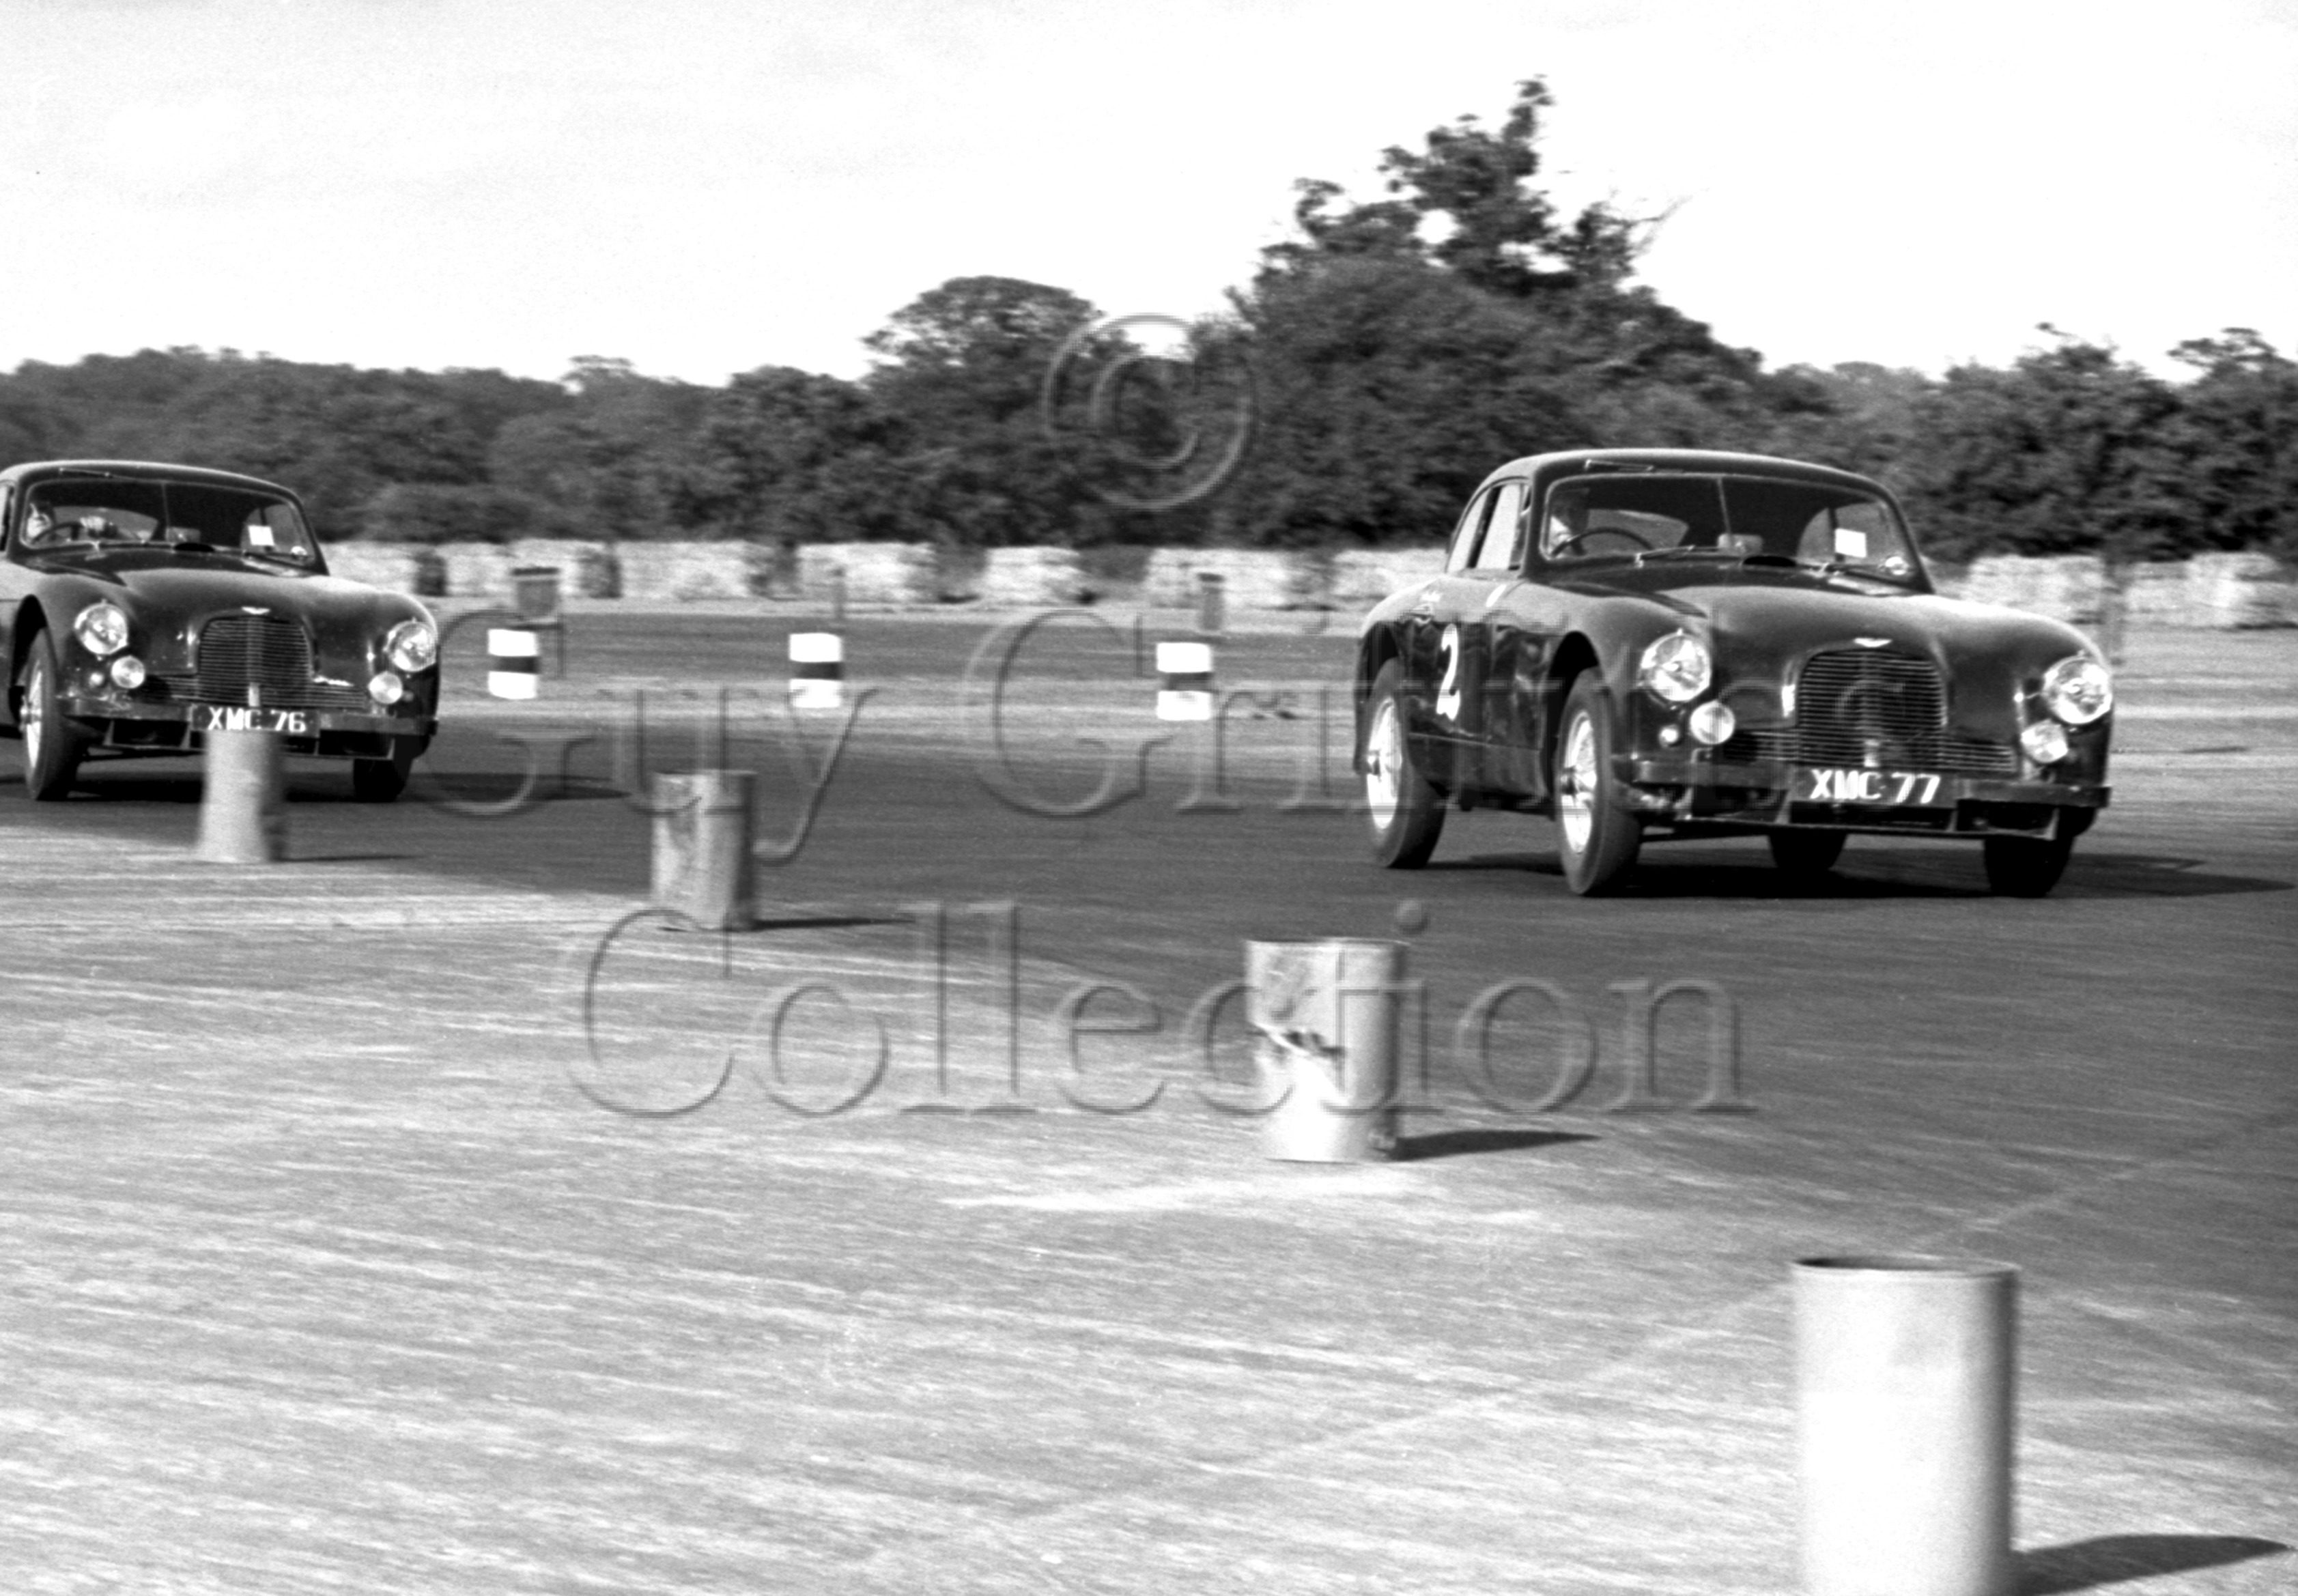 47-913–G-Abecassis–Aston-Martin–DB11–Silverstone–28-07-1951.jpg - The Guy Griffiths Collection